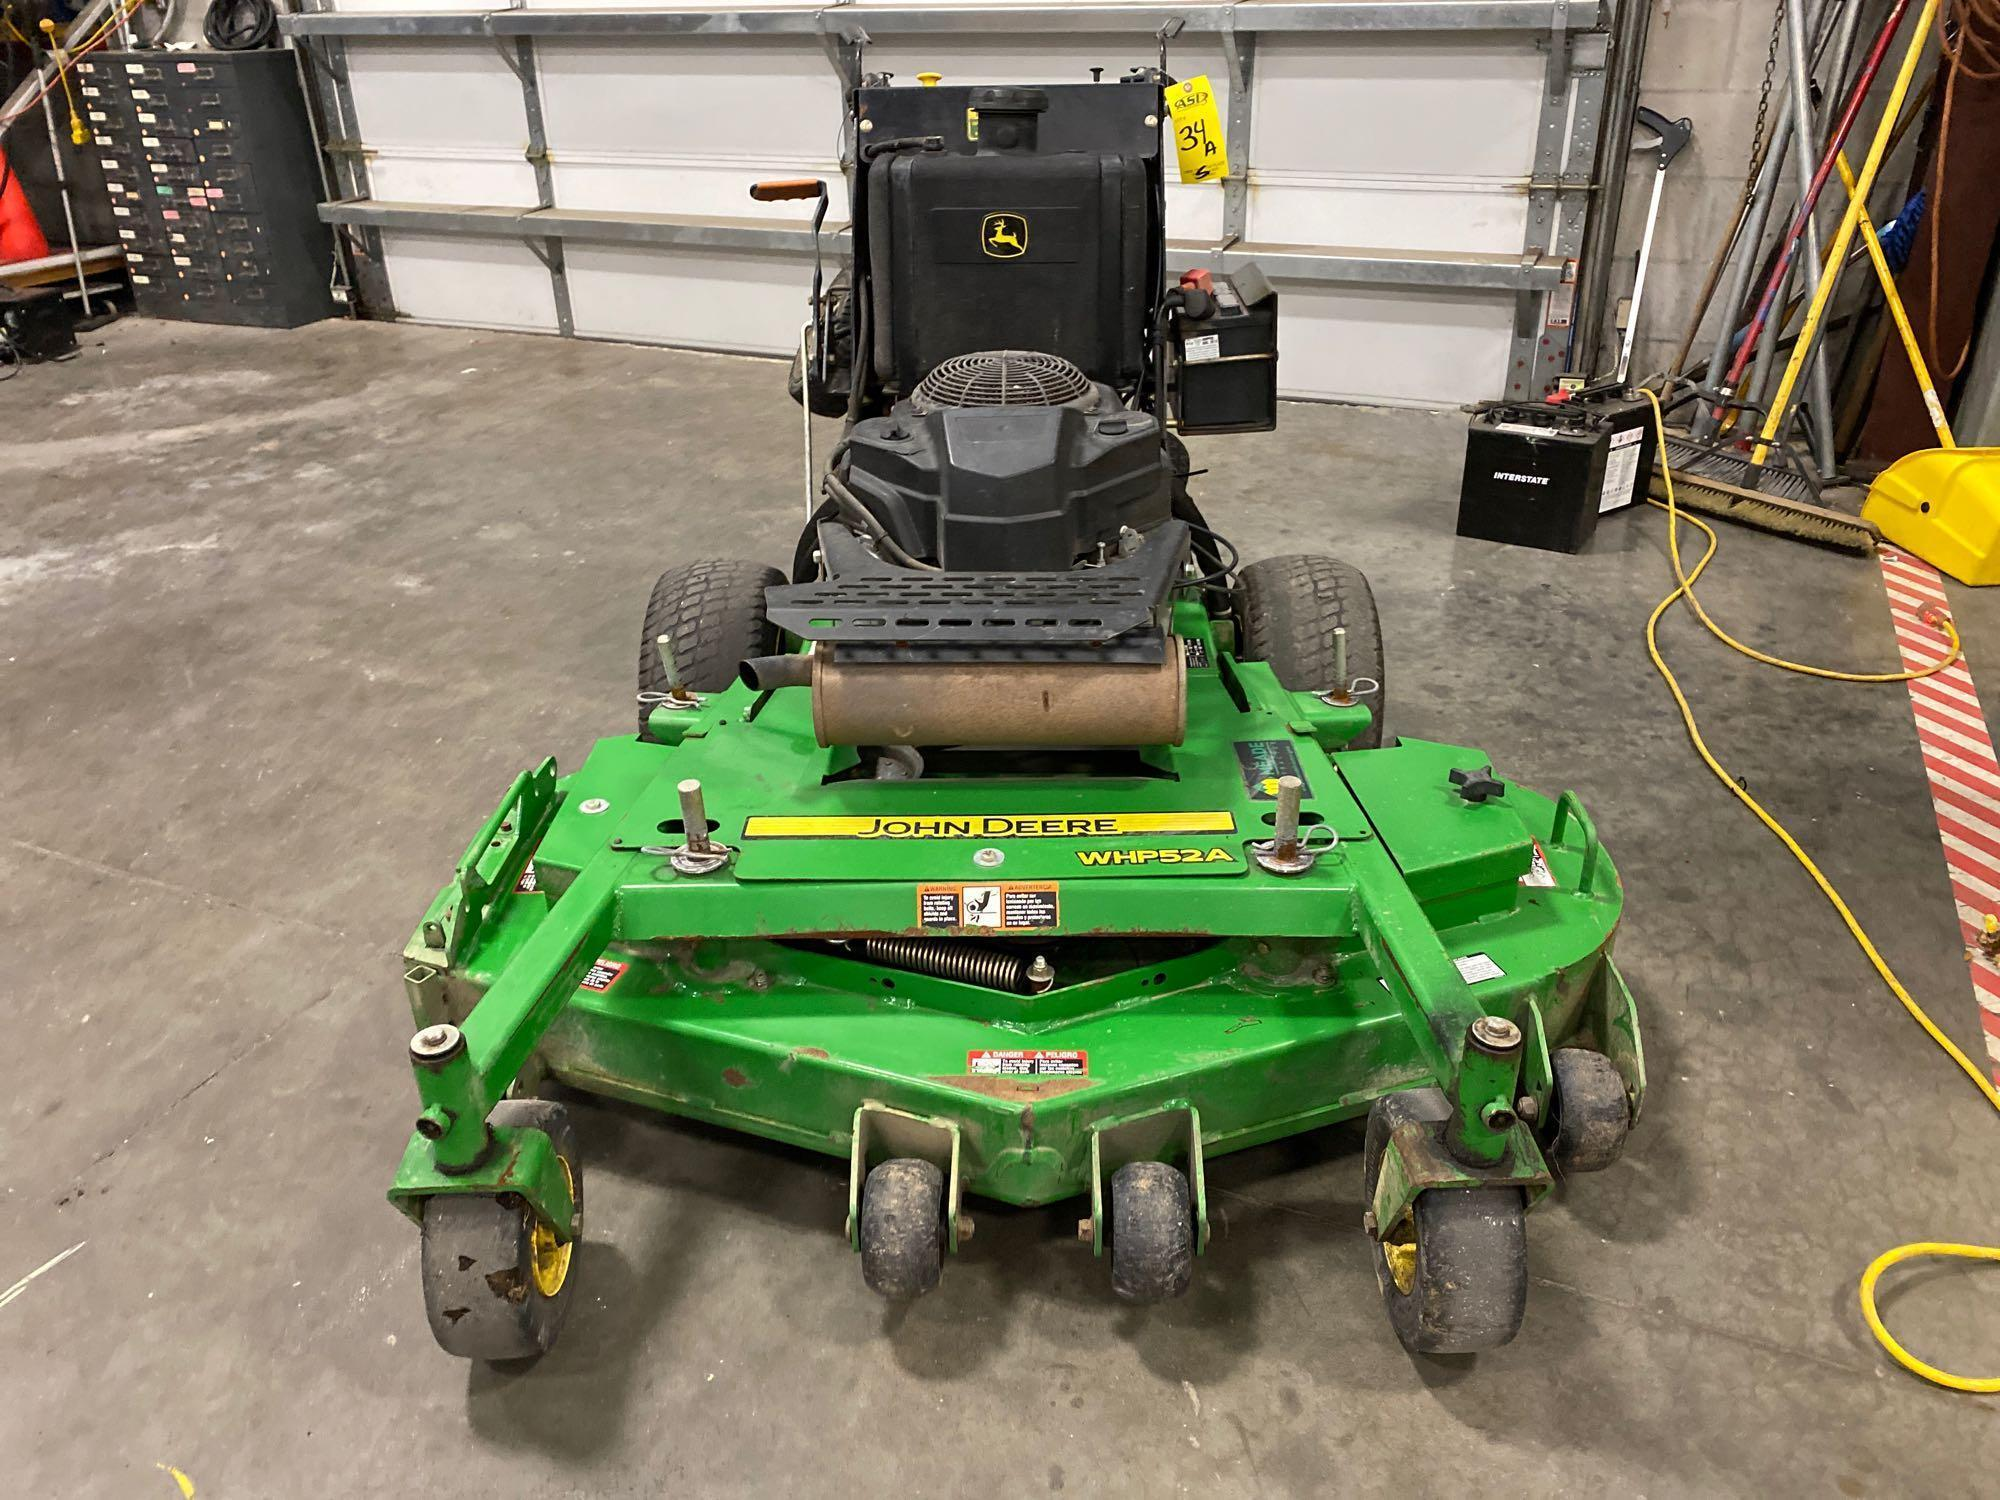 "JOHN DEERE MOWER JOHN DEERE WHP52A MOWER, 52"" DECK, RUNS AND OPERATES"